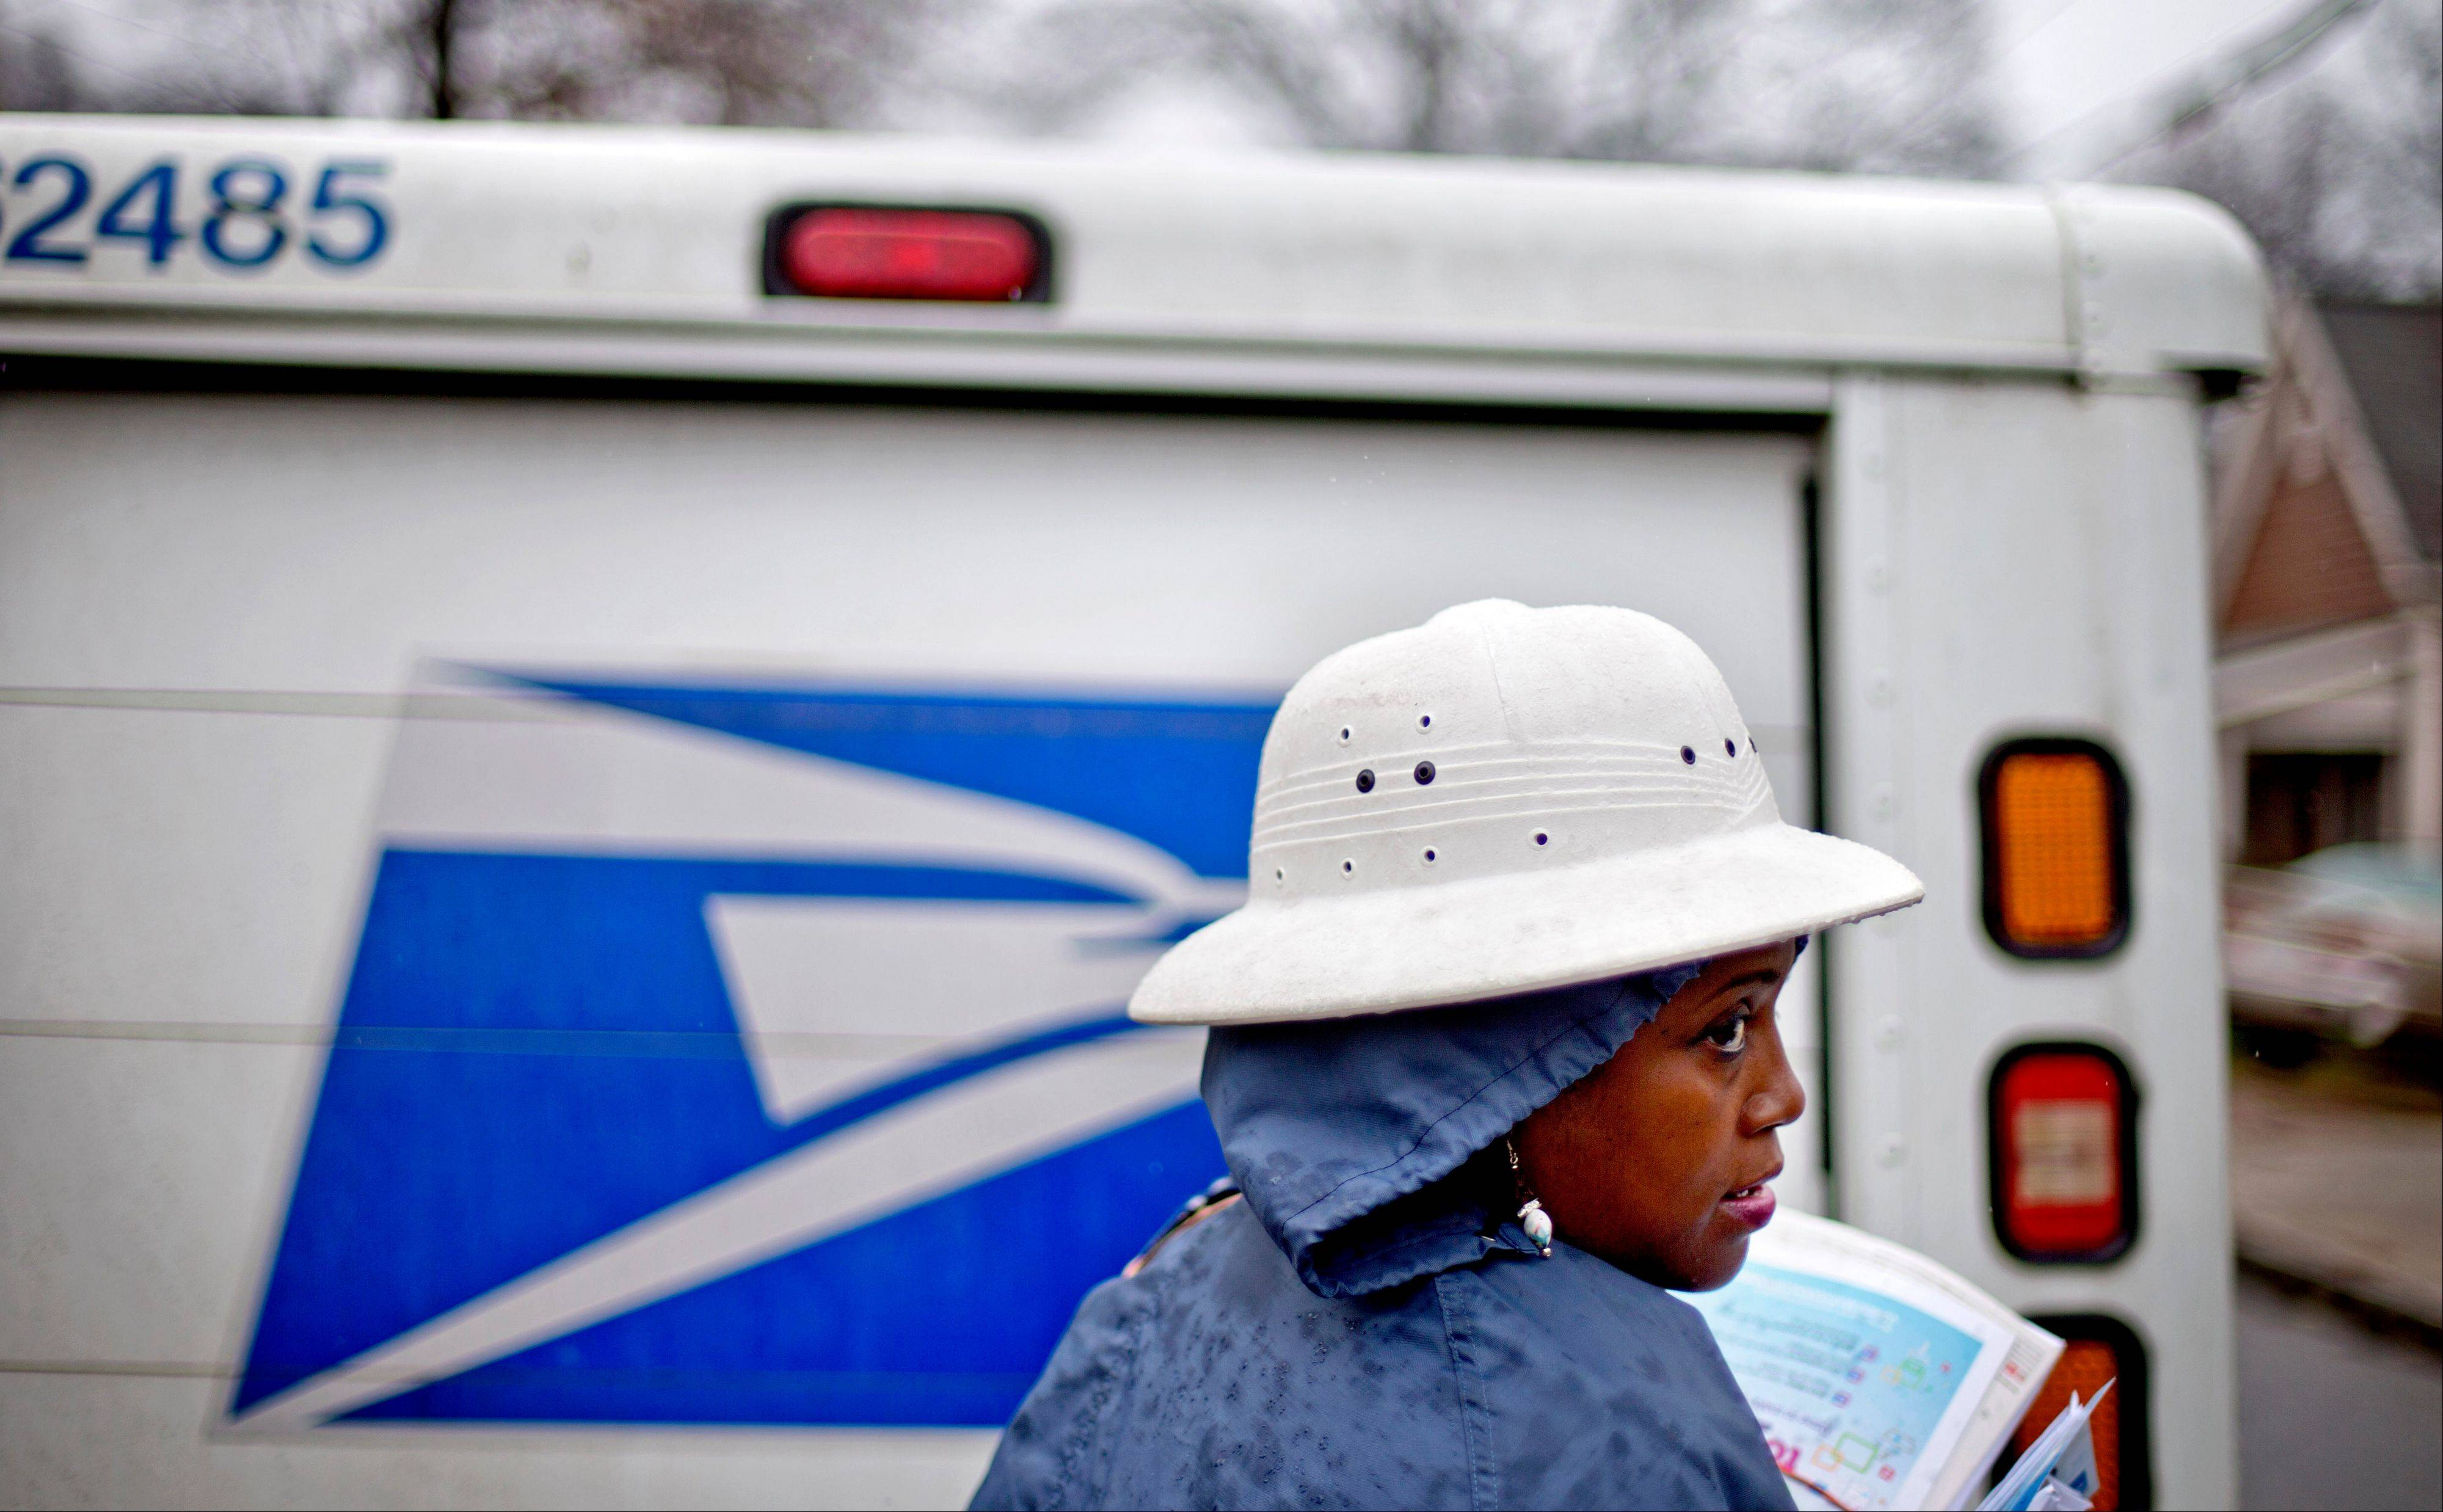 As many high-profile agencies sit idle because of the federal government shutdown, others like the U.S. Postal Service are humming along just fine.